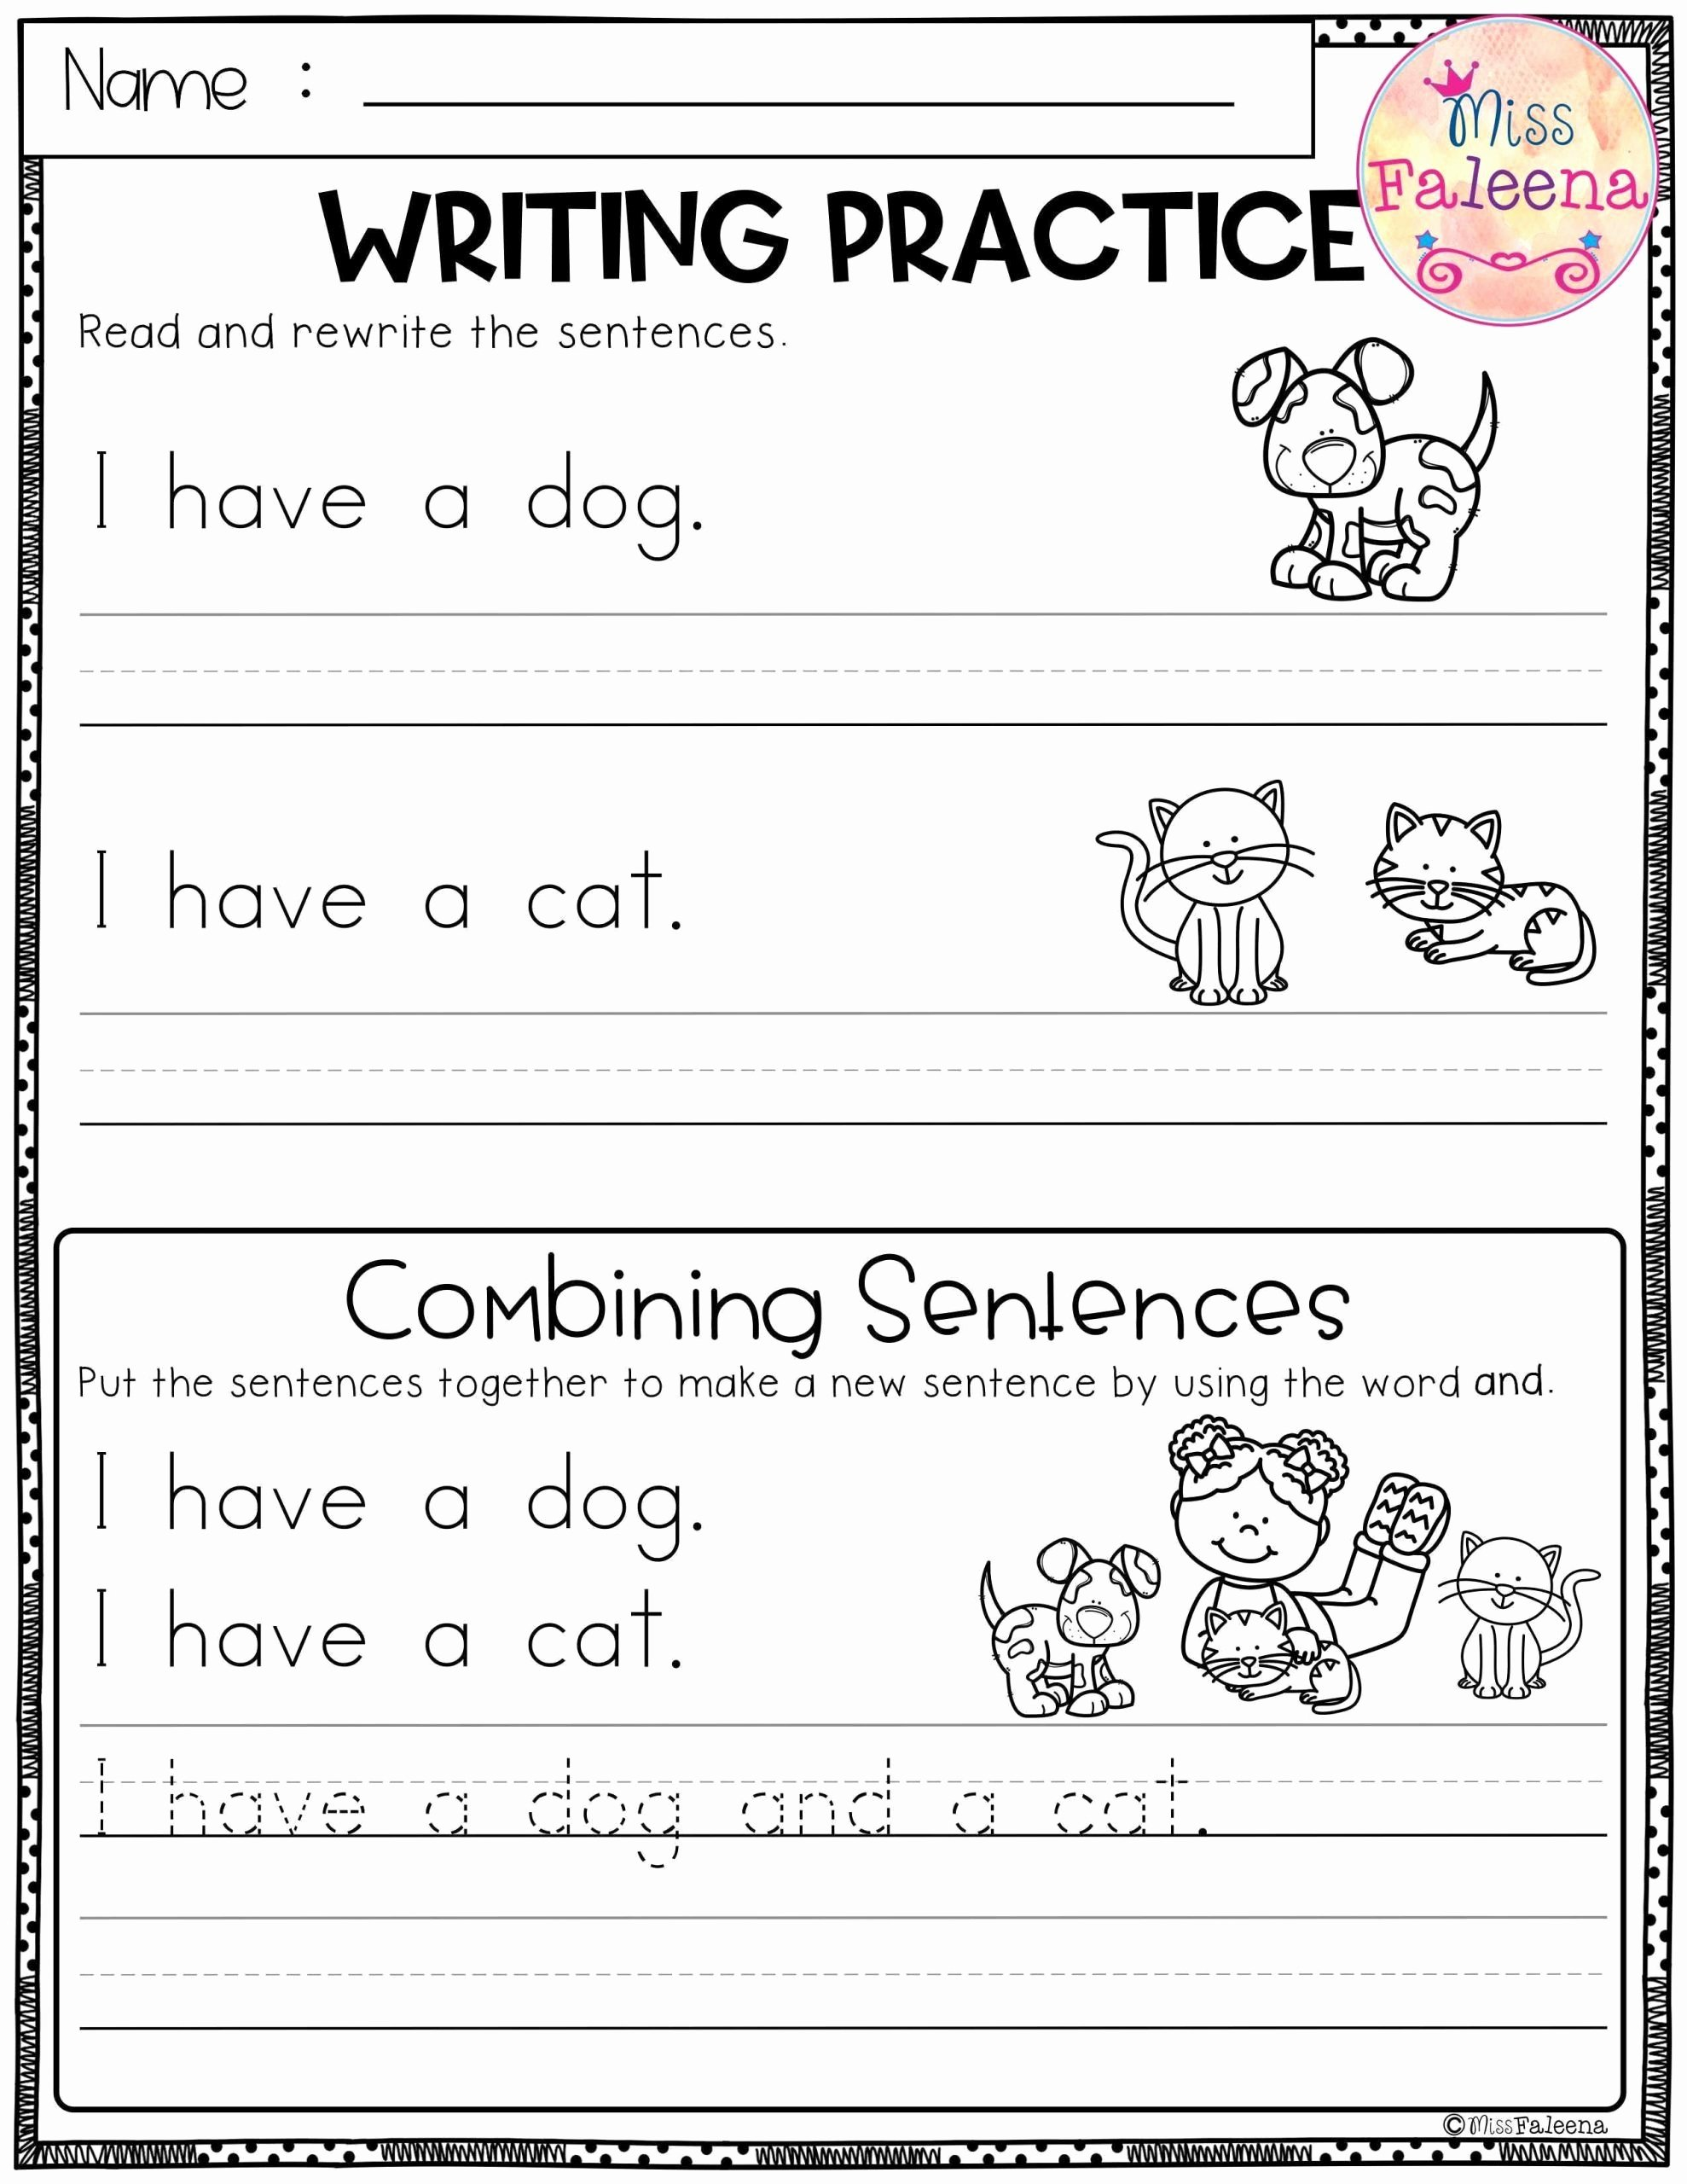 Kindergarten Sentence Writing Practice Worksheets Free Pin On Printable Worksheet for Kindergarten